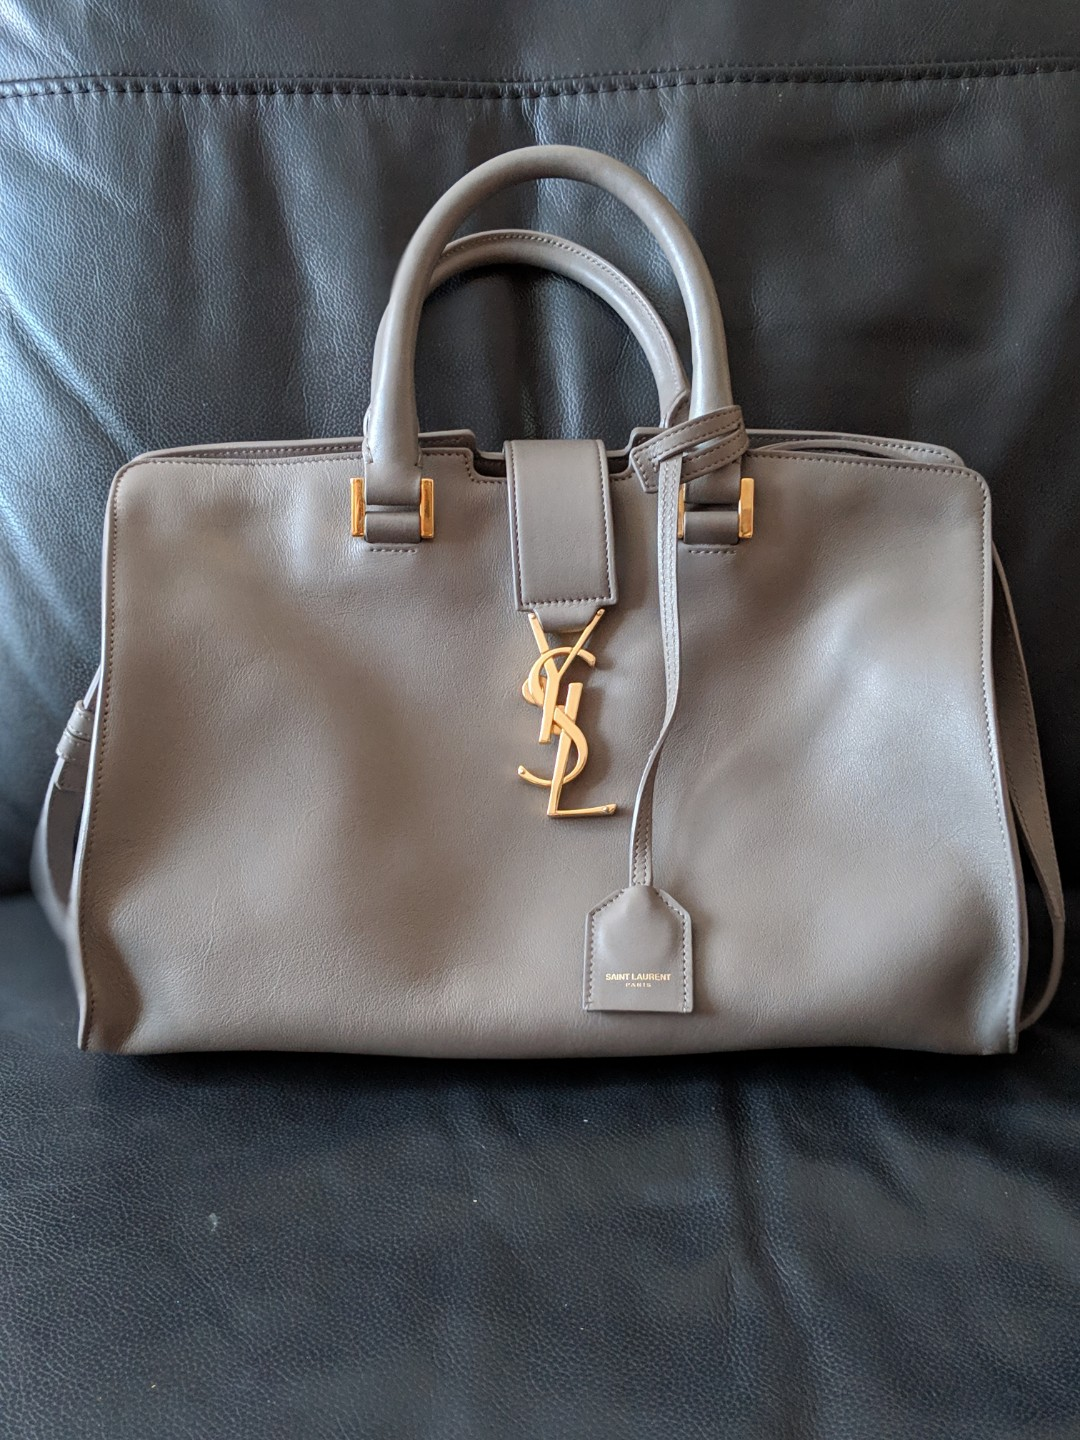 09e20791941 Saint Laurent YSL Cabas small (light grey), Luxury, Bags & Wallets ...